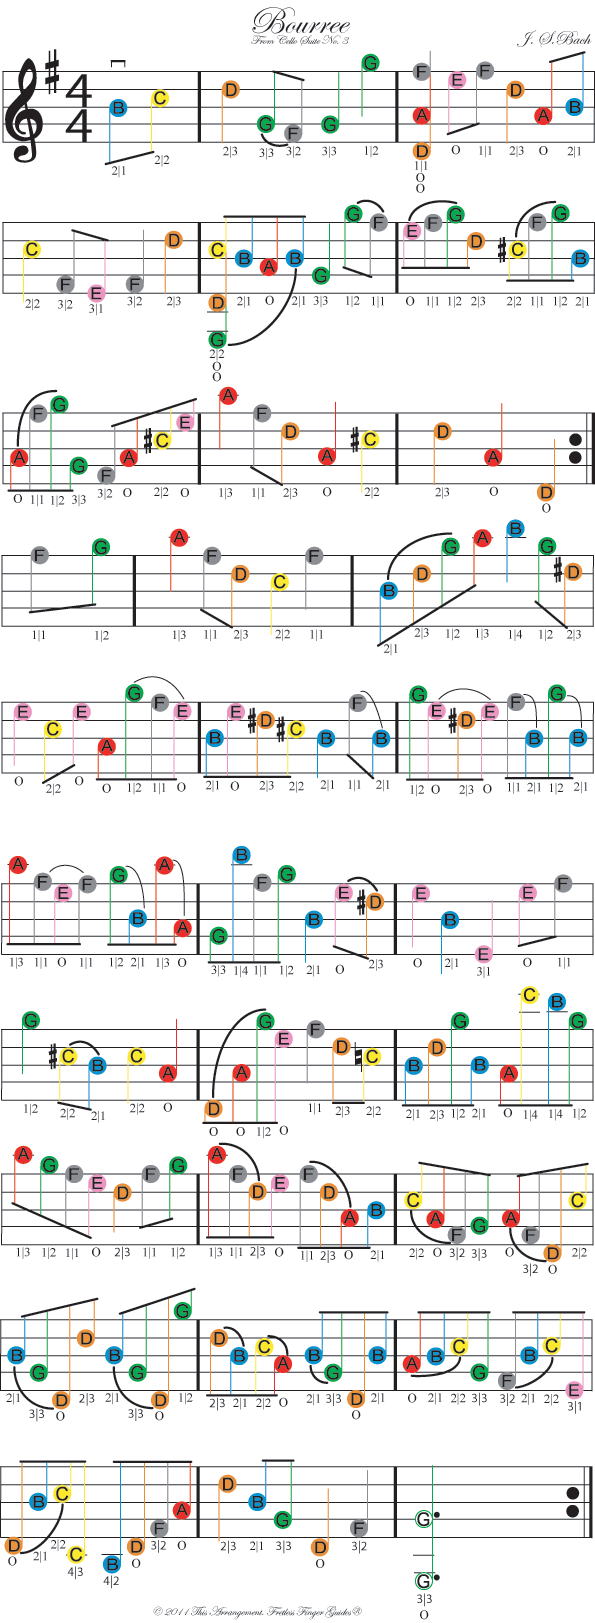 color coded free violin sheet music for bachs bourree